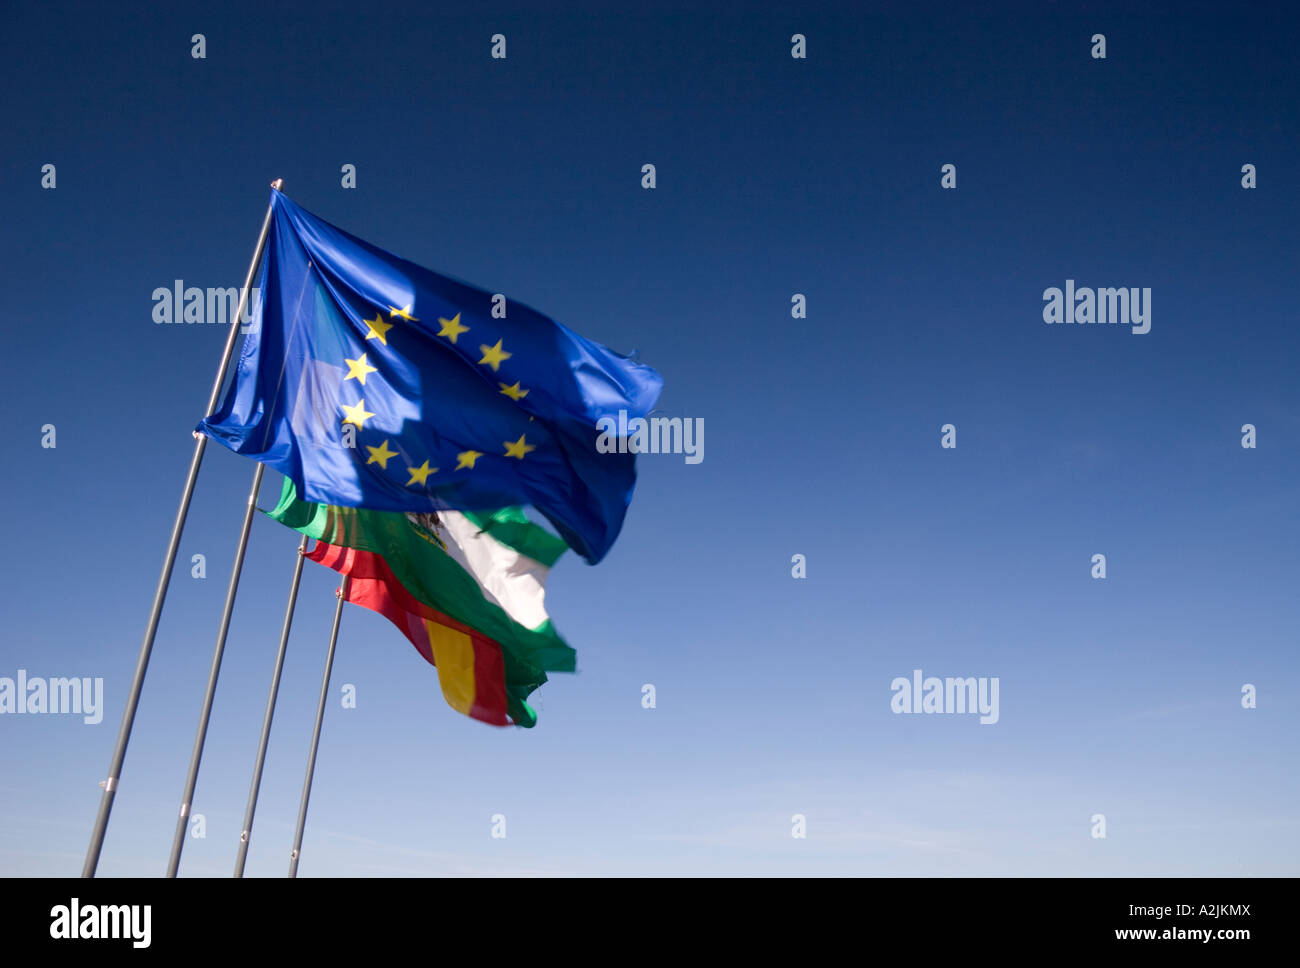 European Union flag, Andalucian flag and the Spanish flag fly from the Alhambra tower, Granada, Andalucia, Spain - Stock Image